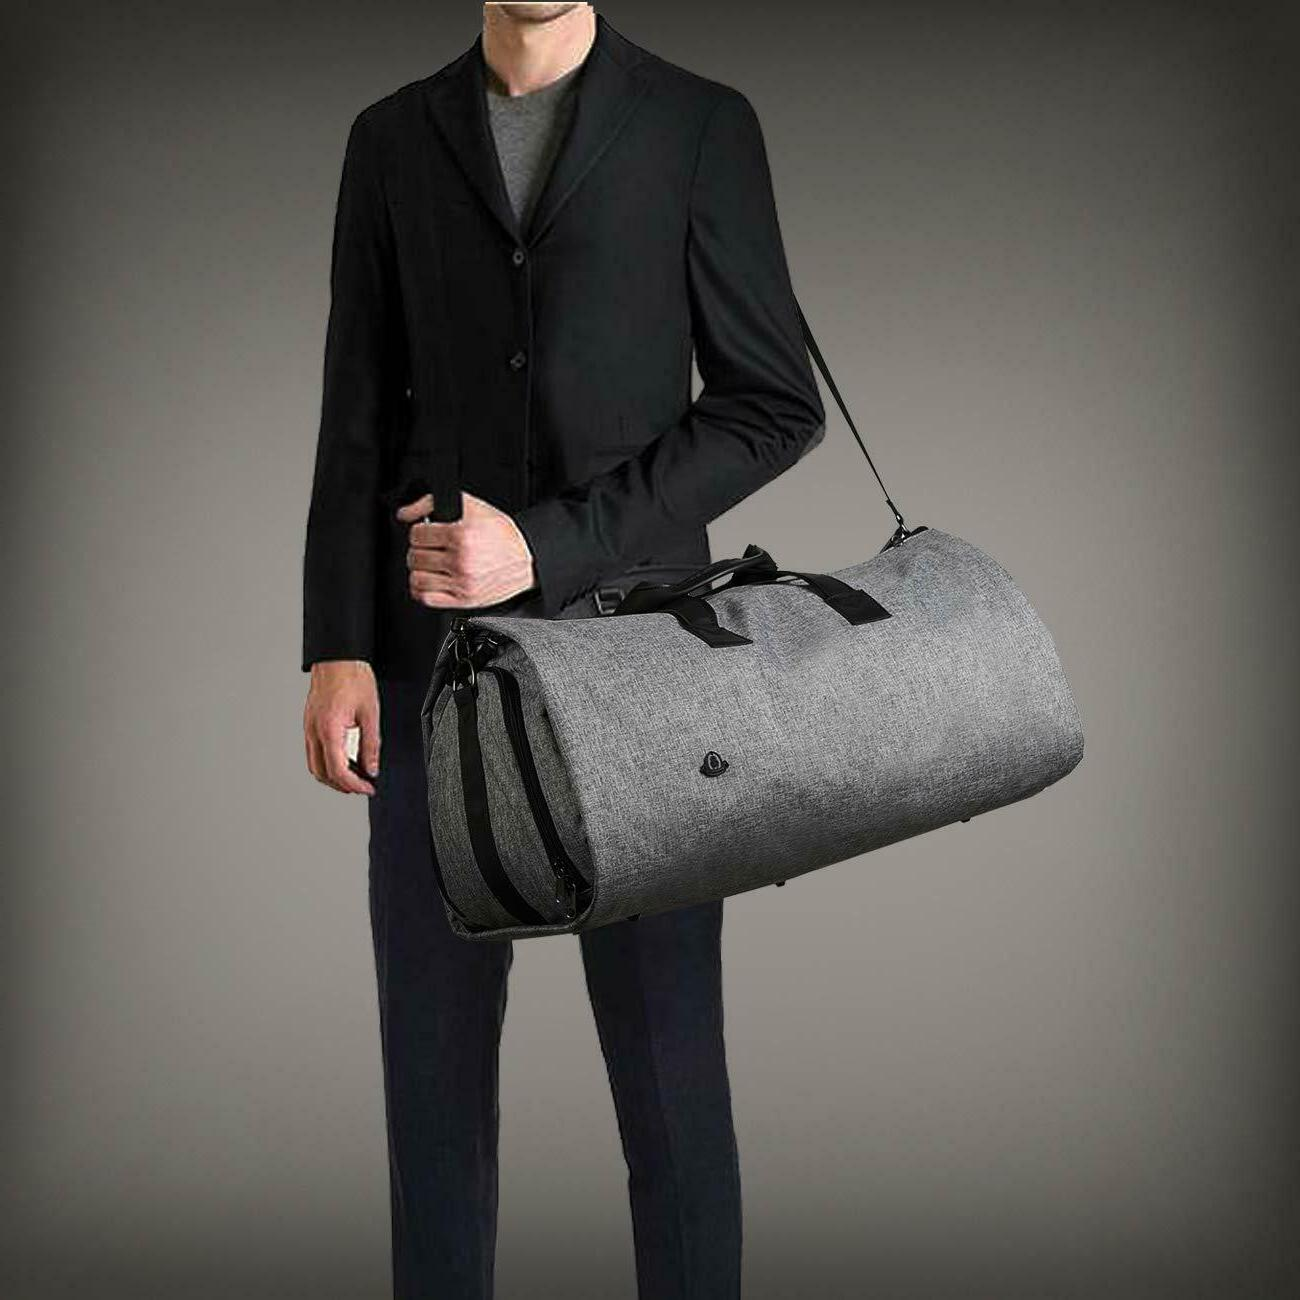 BUG Travel Bag and Bag 2 in 1 Suit..